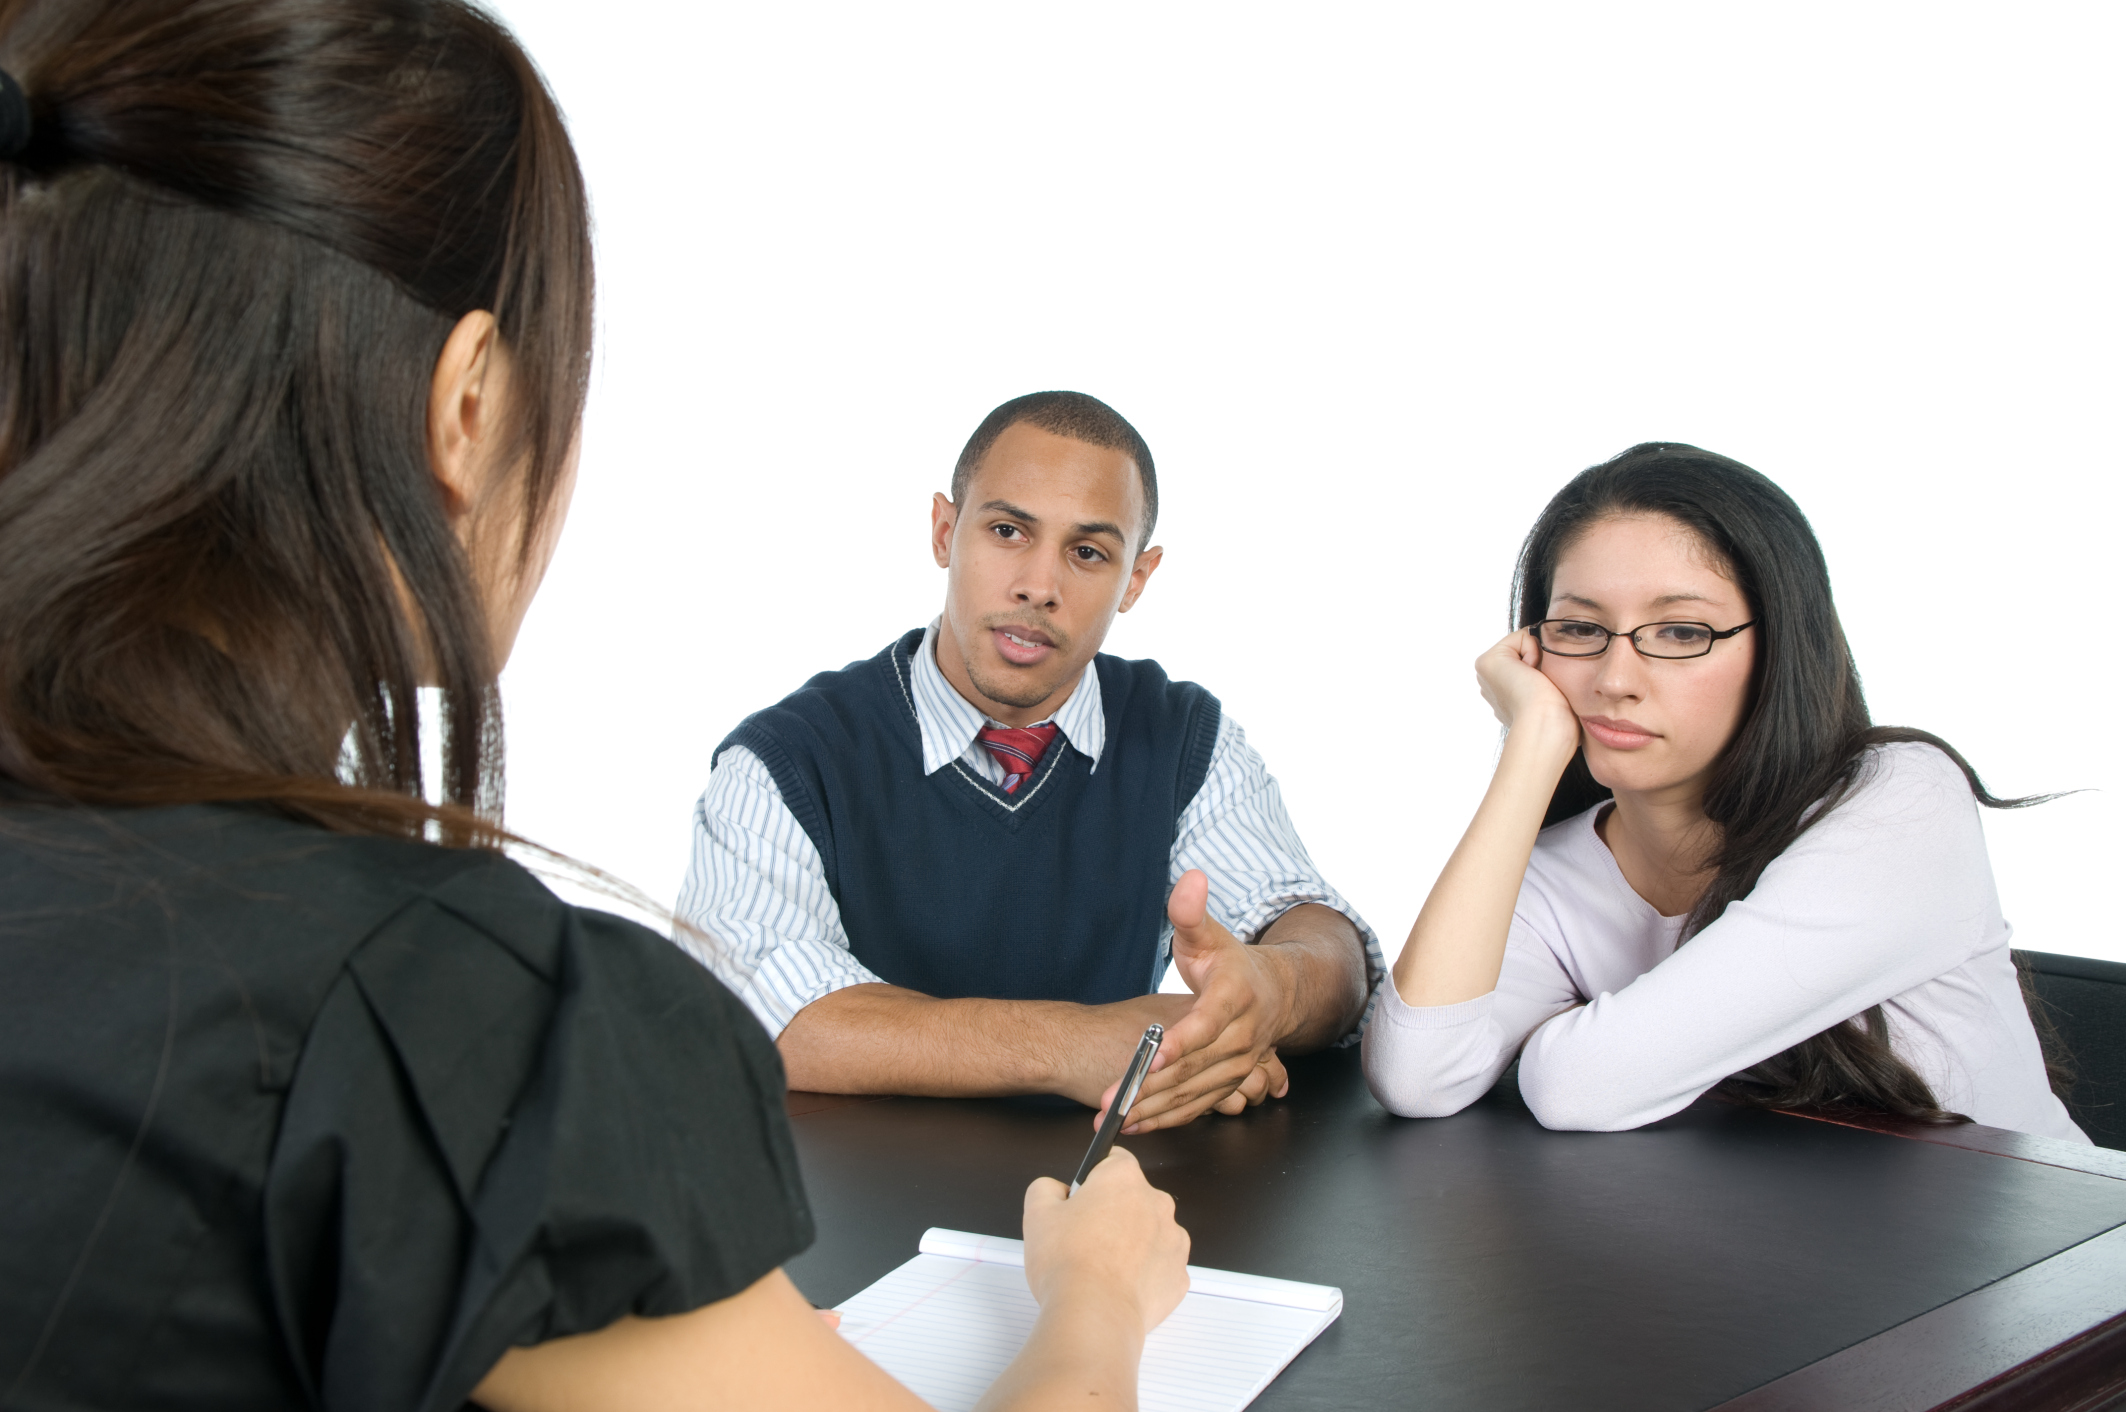 10 Very Helpful Marriage Counseling Questions